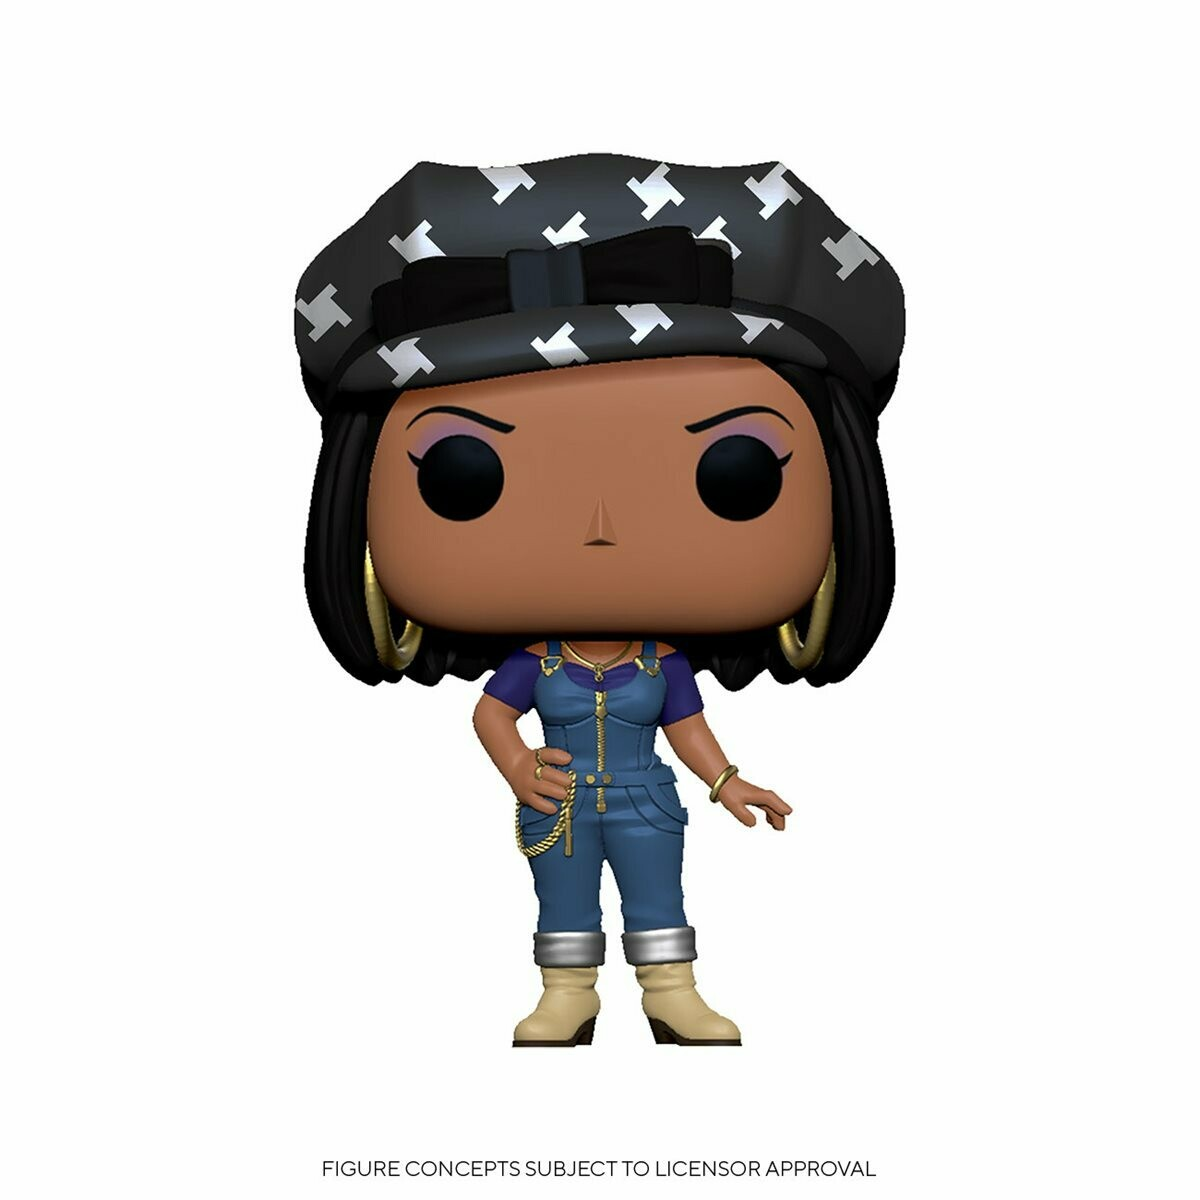 PRE-ORDER The Office Casual Friday Kelly Pop! Vinyl Figure